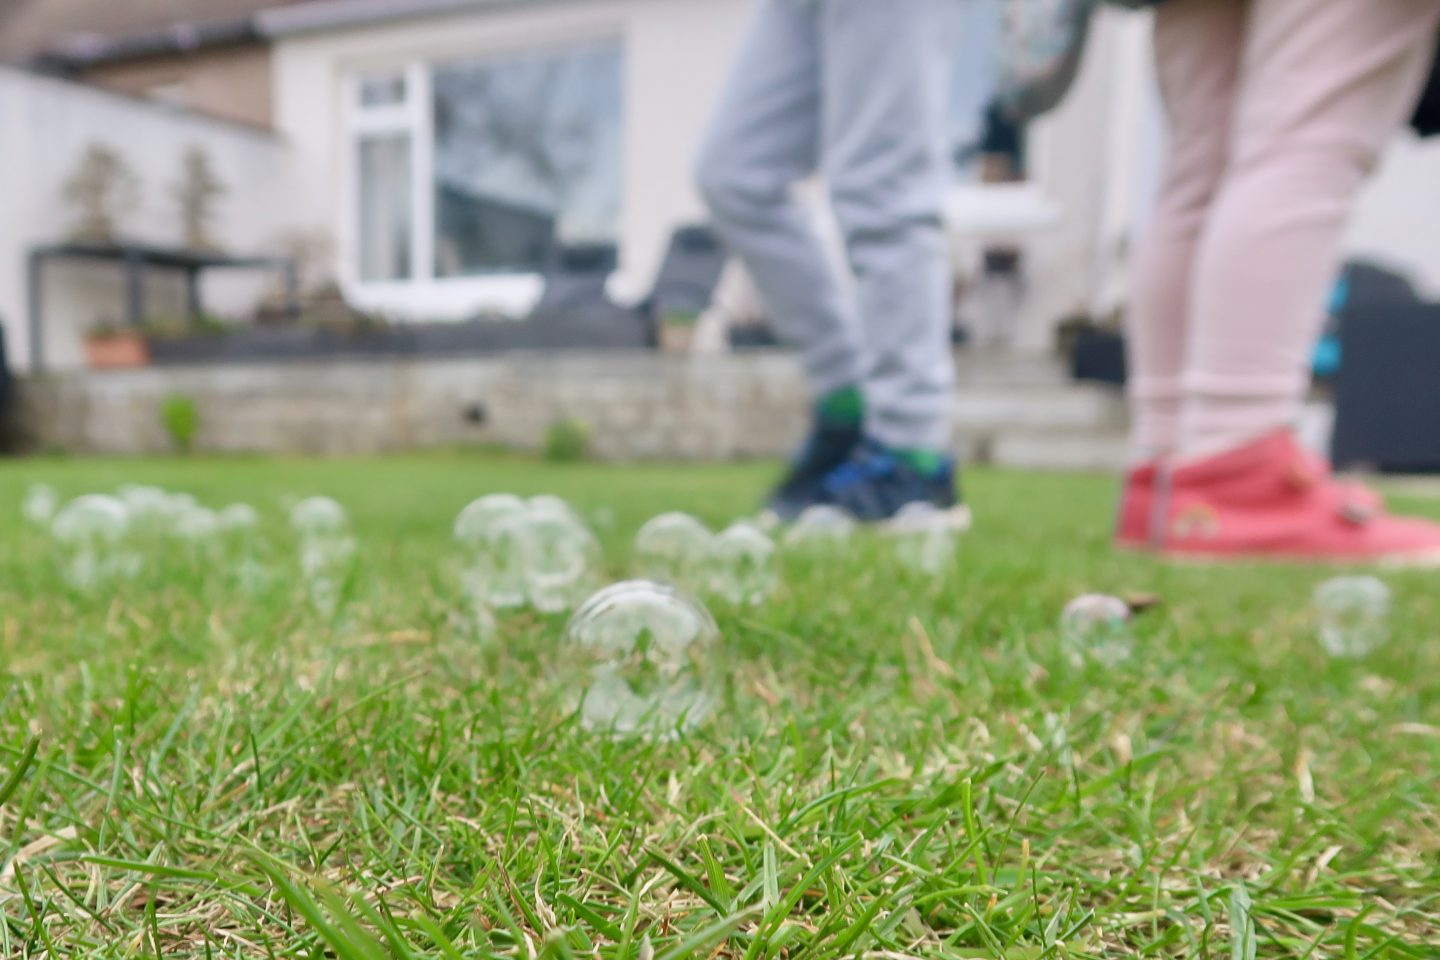 The legs and feet of some children, standing on grass that is covered in bubbles